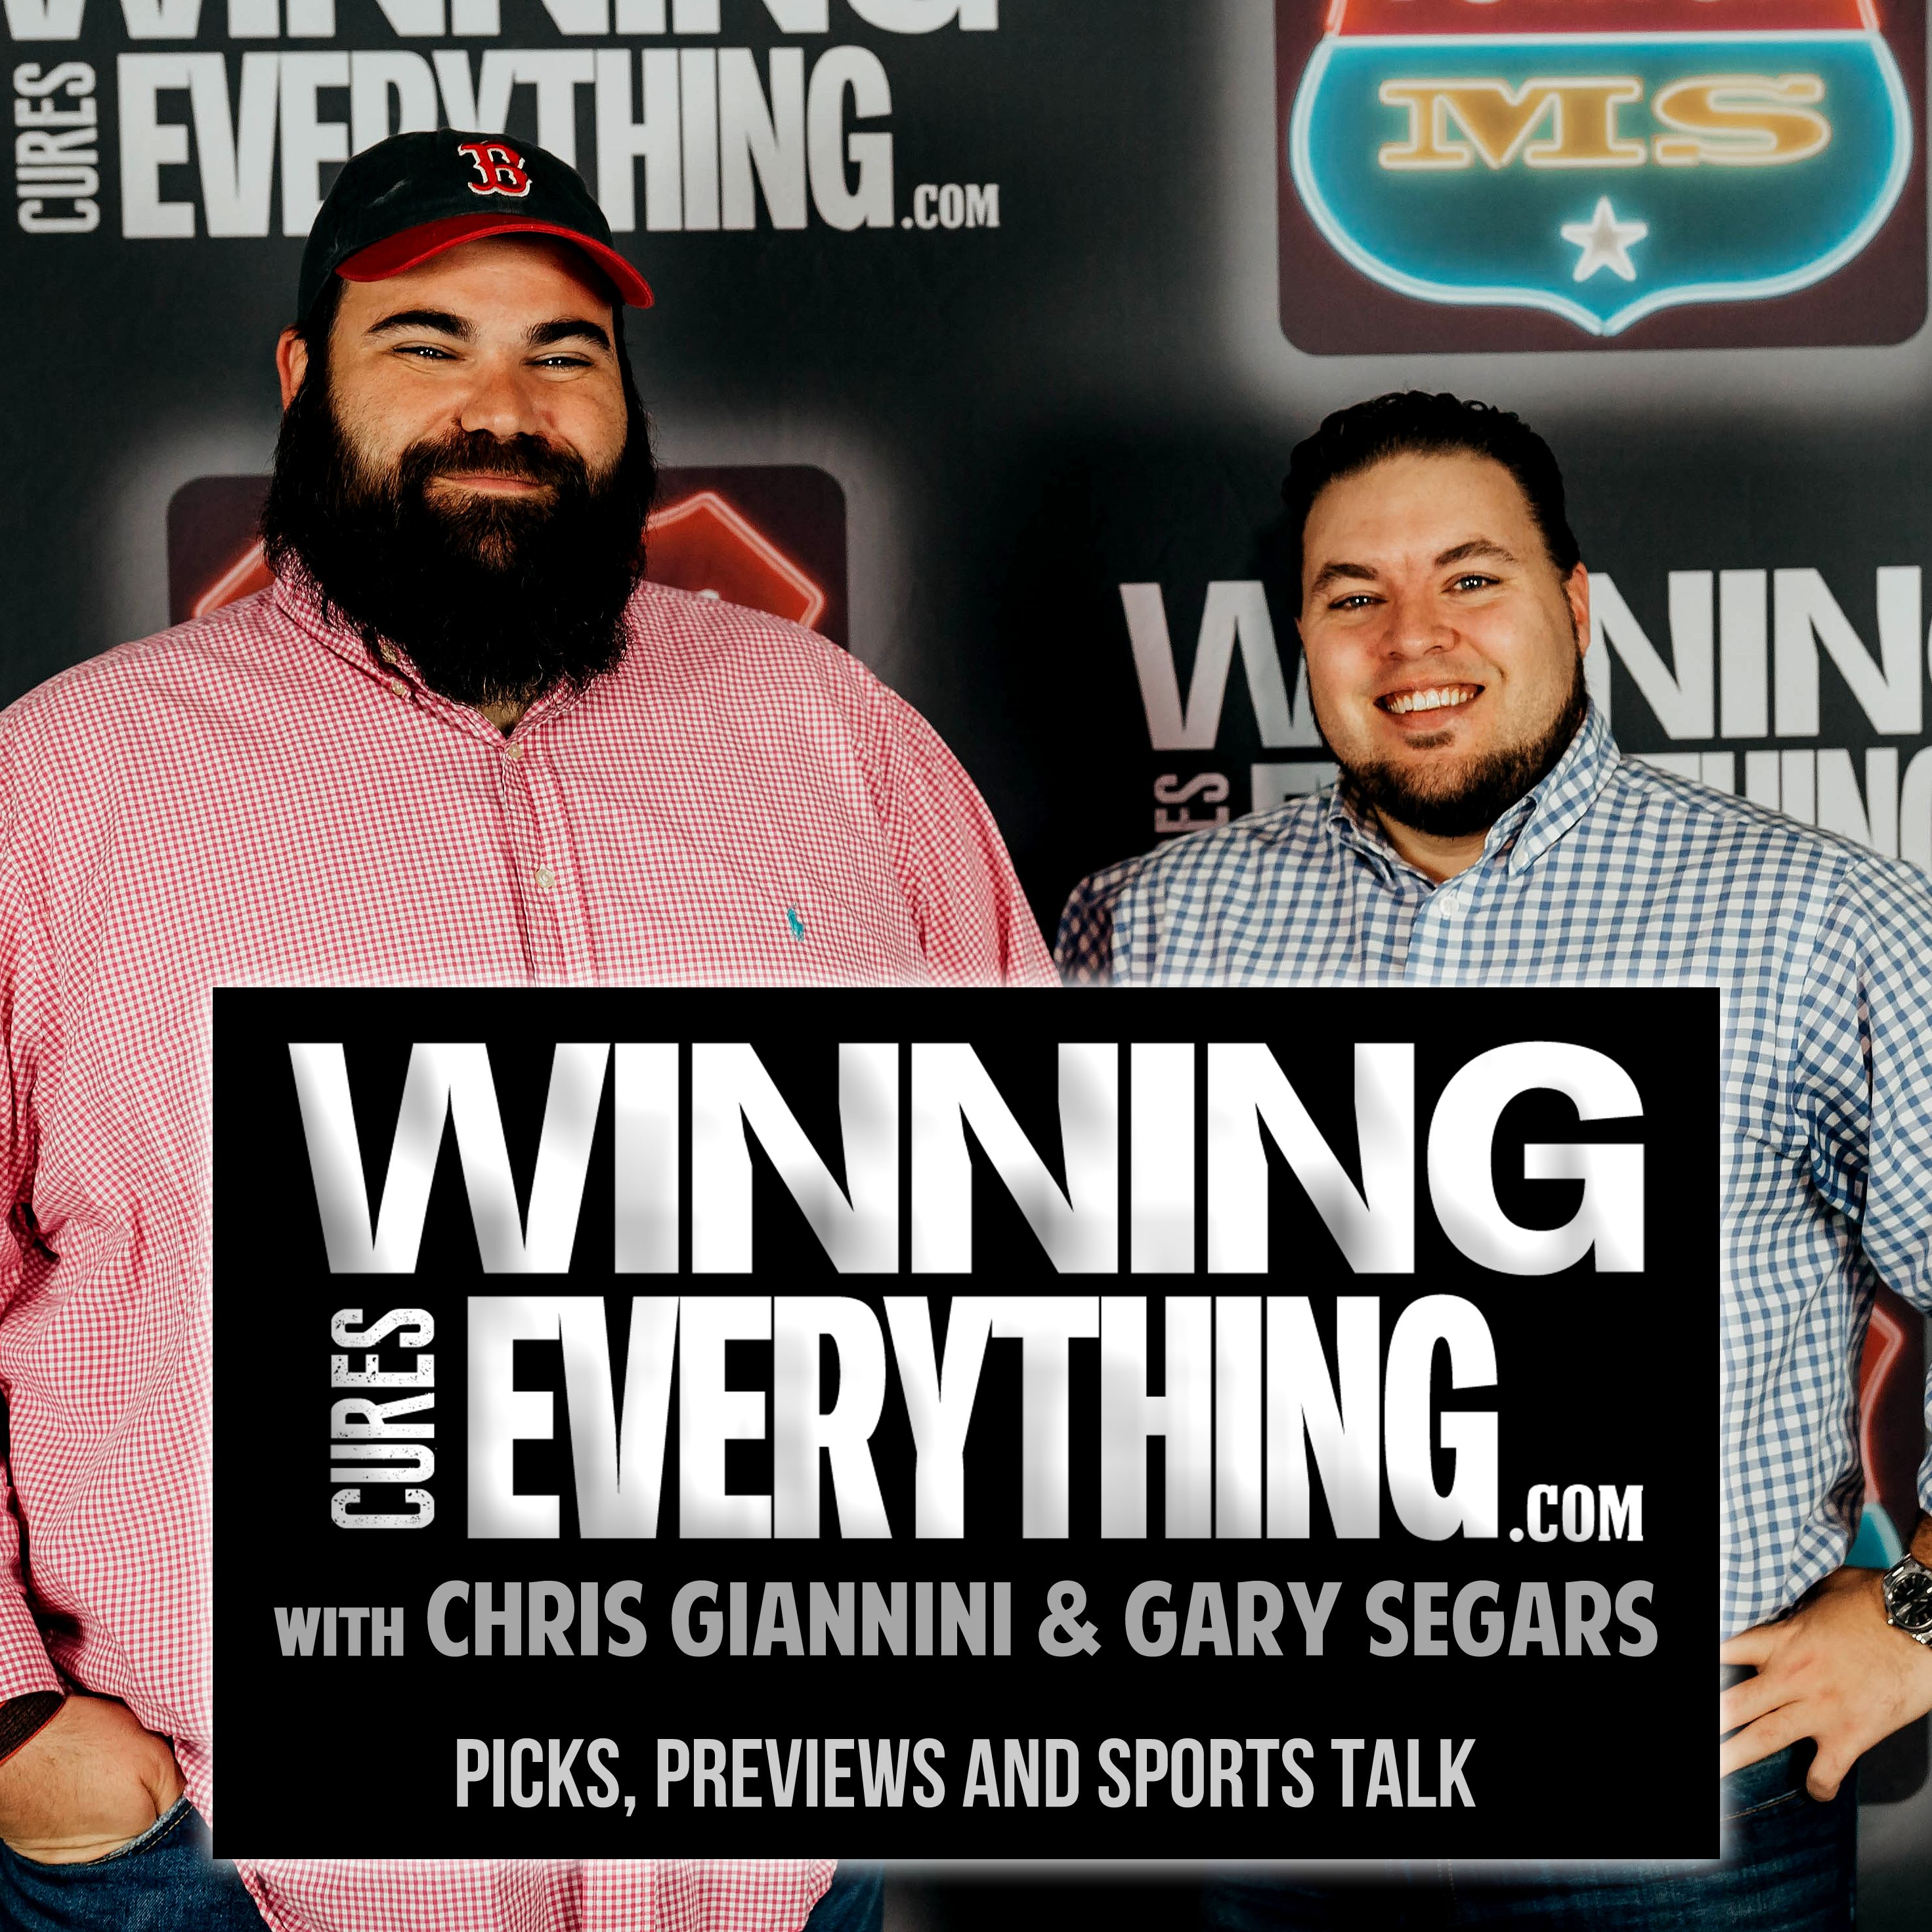 wce-265-nfl-divisional-recap-nfc-and-afc-championship-previews-cfb-transfers-and-nfl-hires_thumbnail.png